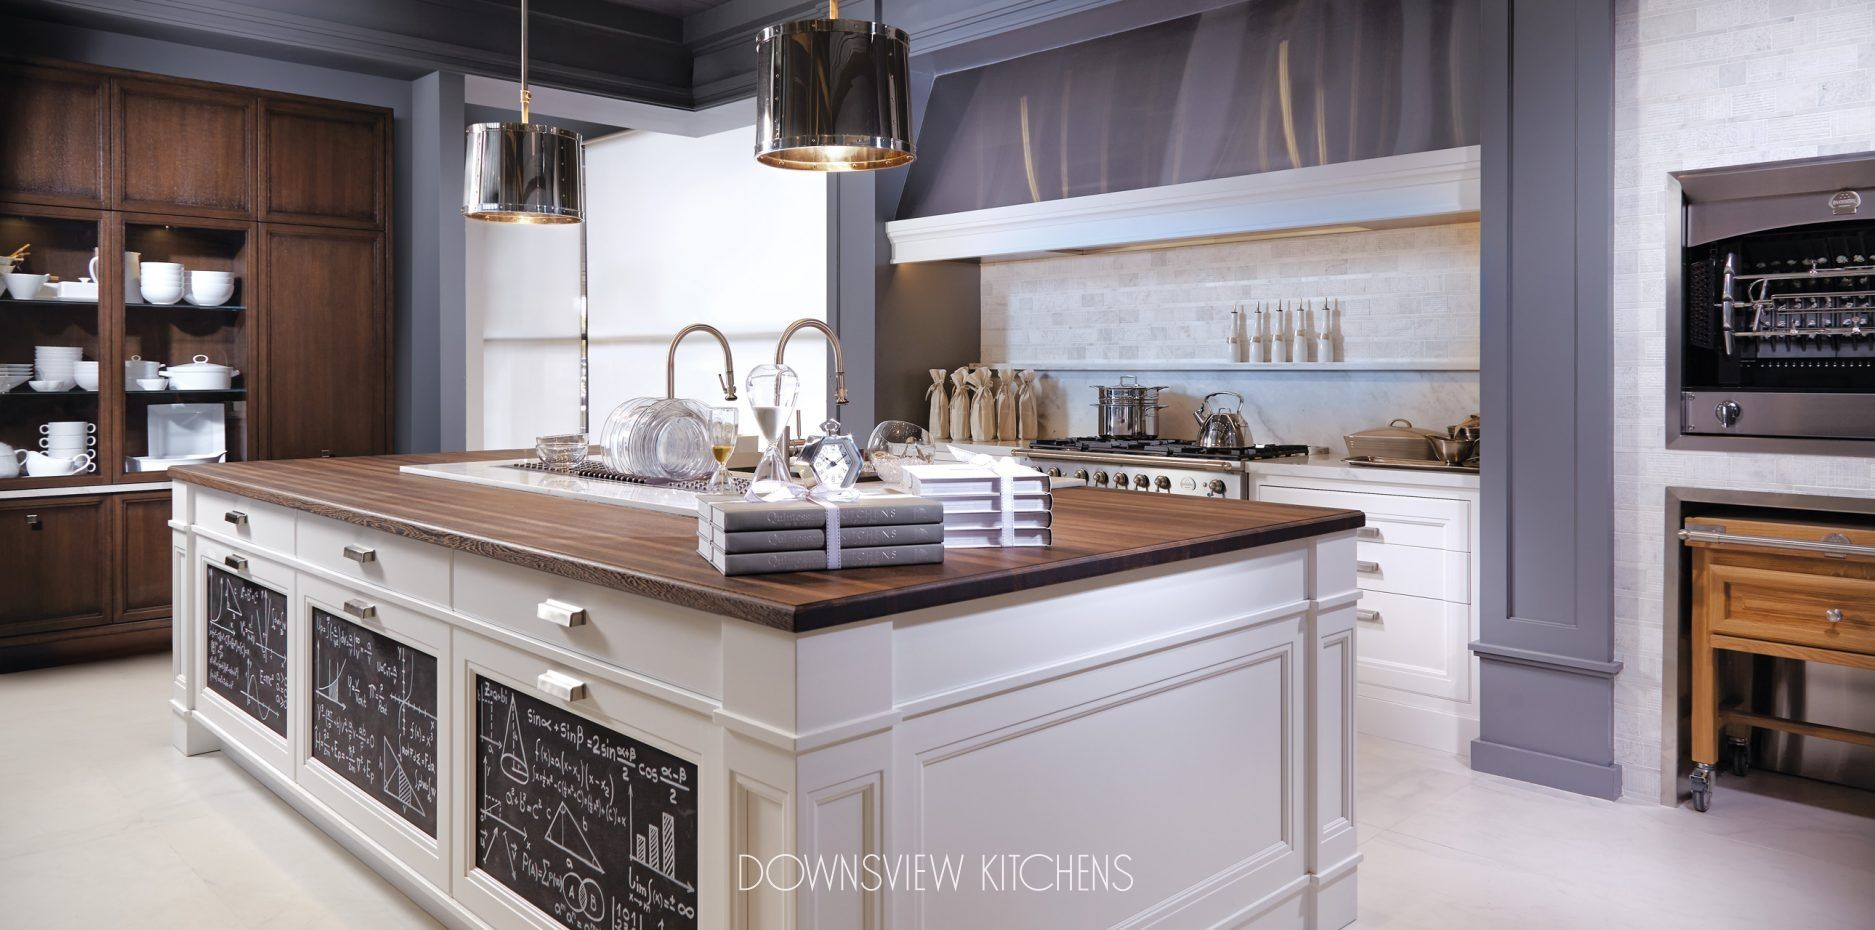 DESIGN WISDOM Downsview Kitchens and Fine Custom